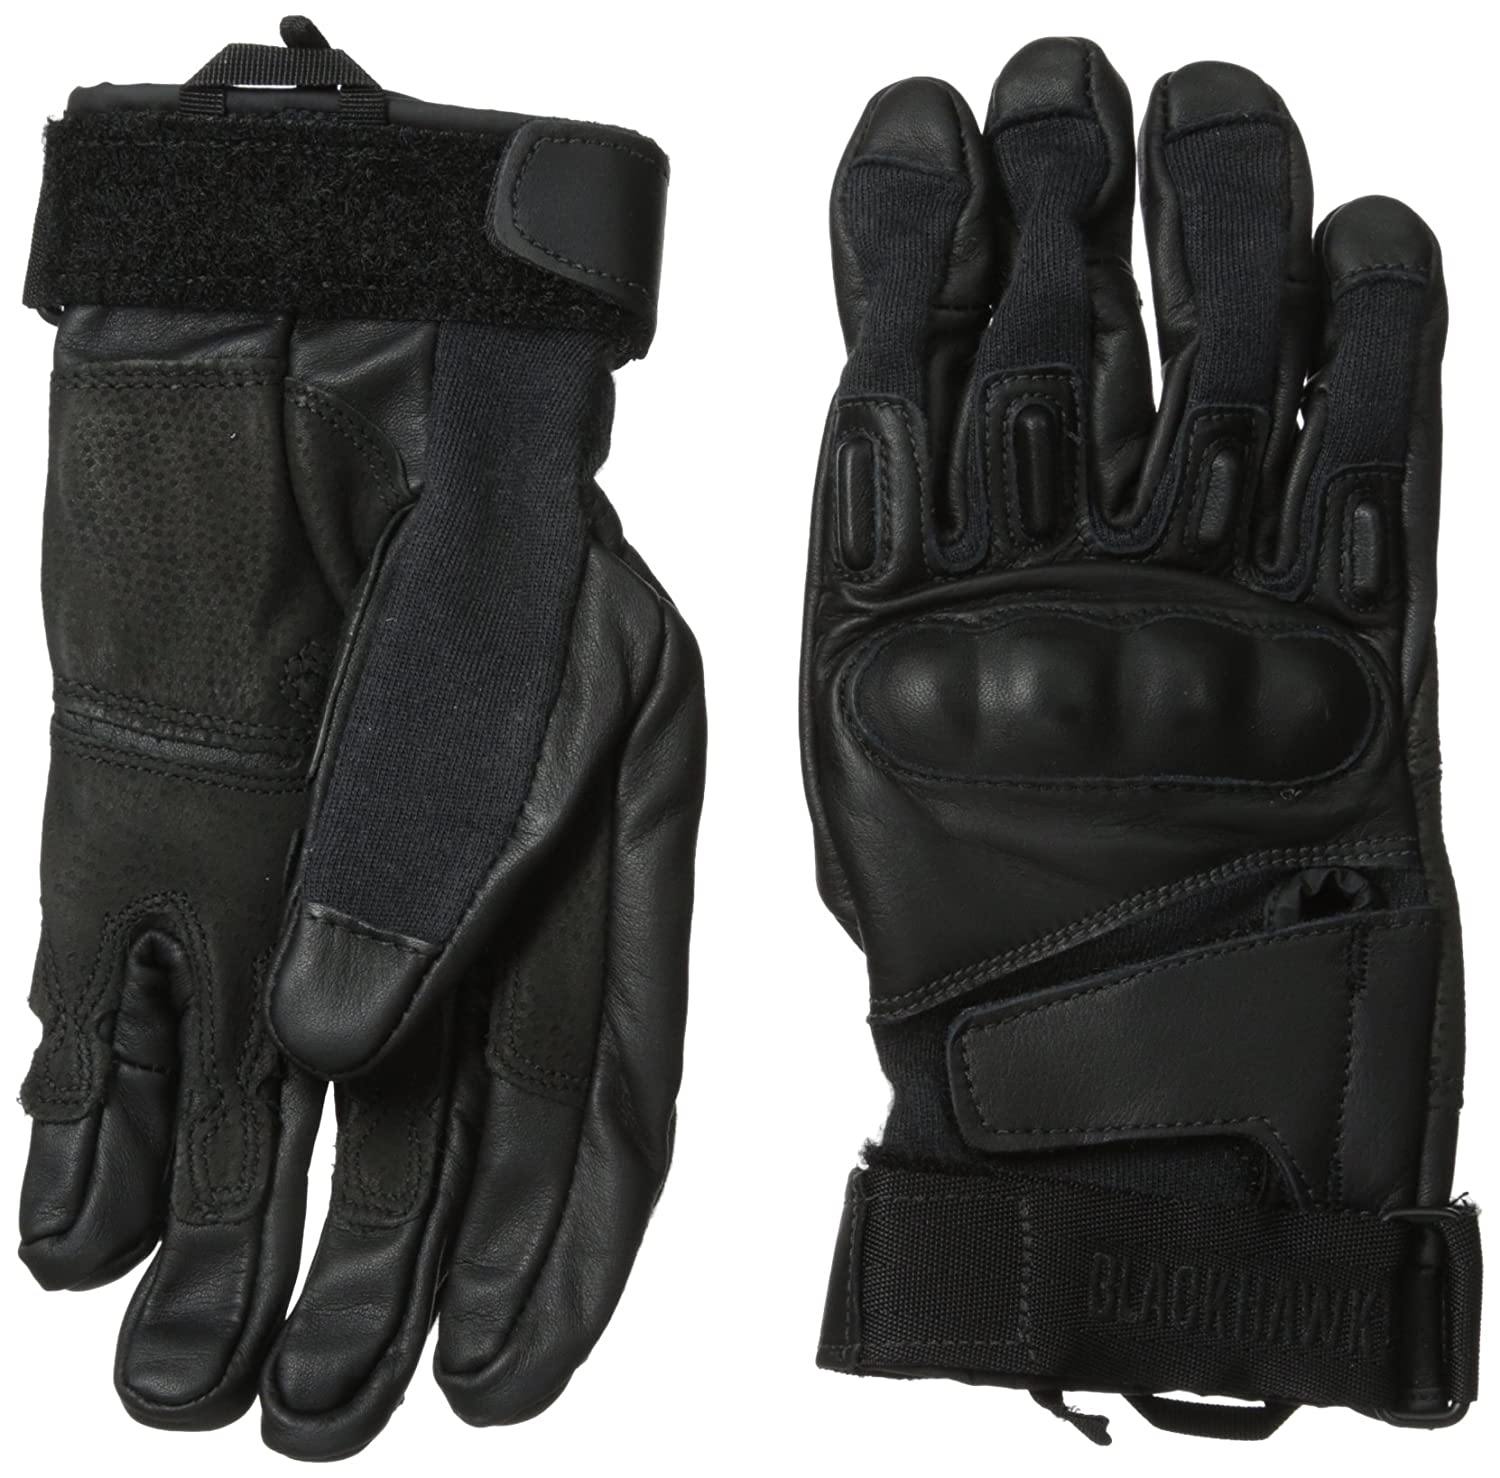 Black tactical gloves - Men S S O L A G Heavy Duty With Kevlar Tactical Gloves Sports Outdoors